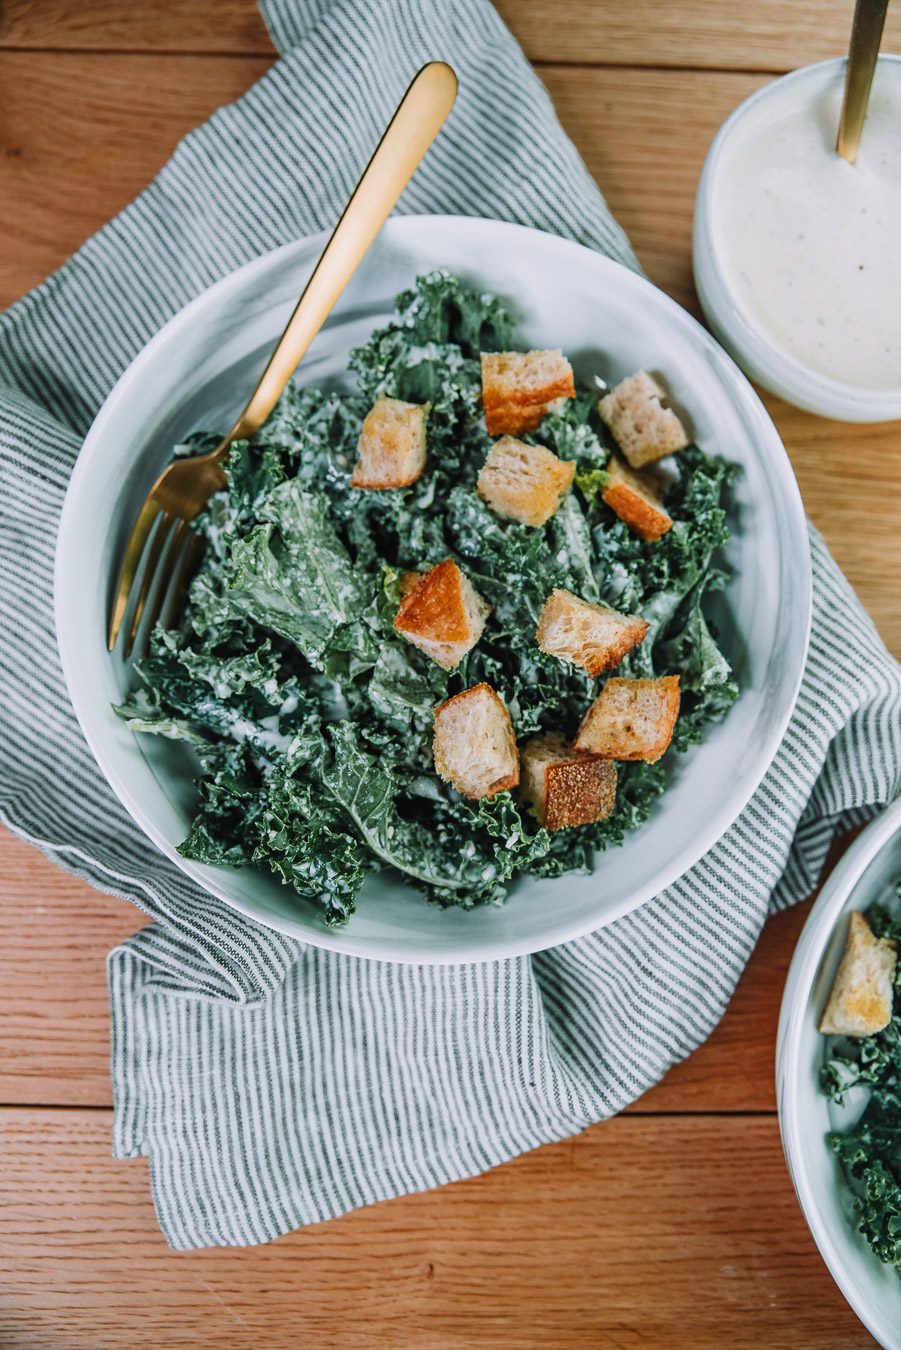 Kale Caesar Salad with fresh baked croutons in a white bowl on a wood table with a kitchen towel. Kale Caesar salad recipe by Farmer's Market Society.  Market Inspired Meals.